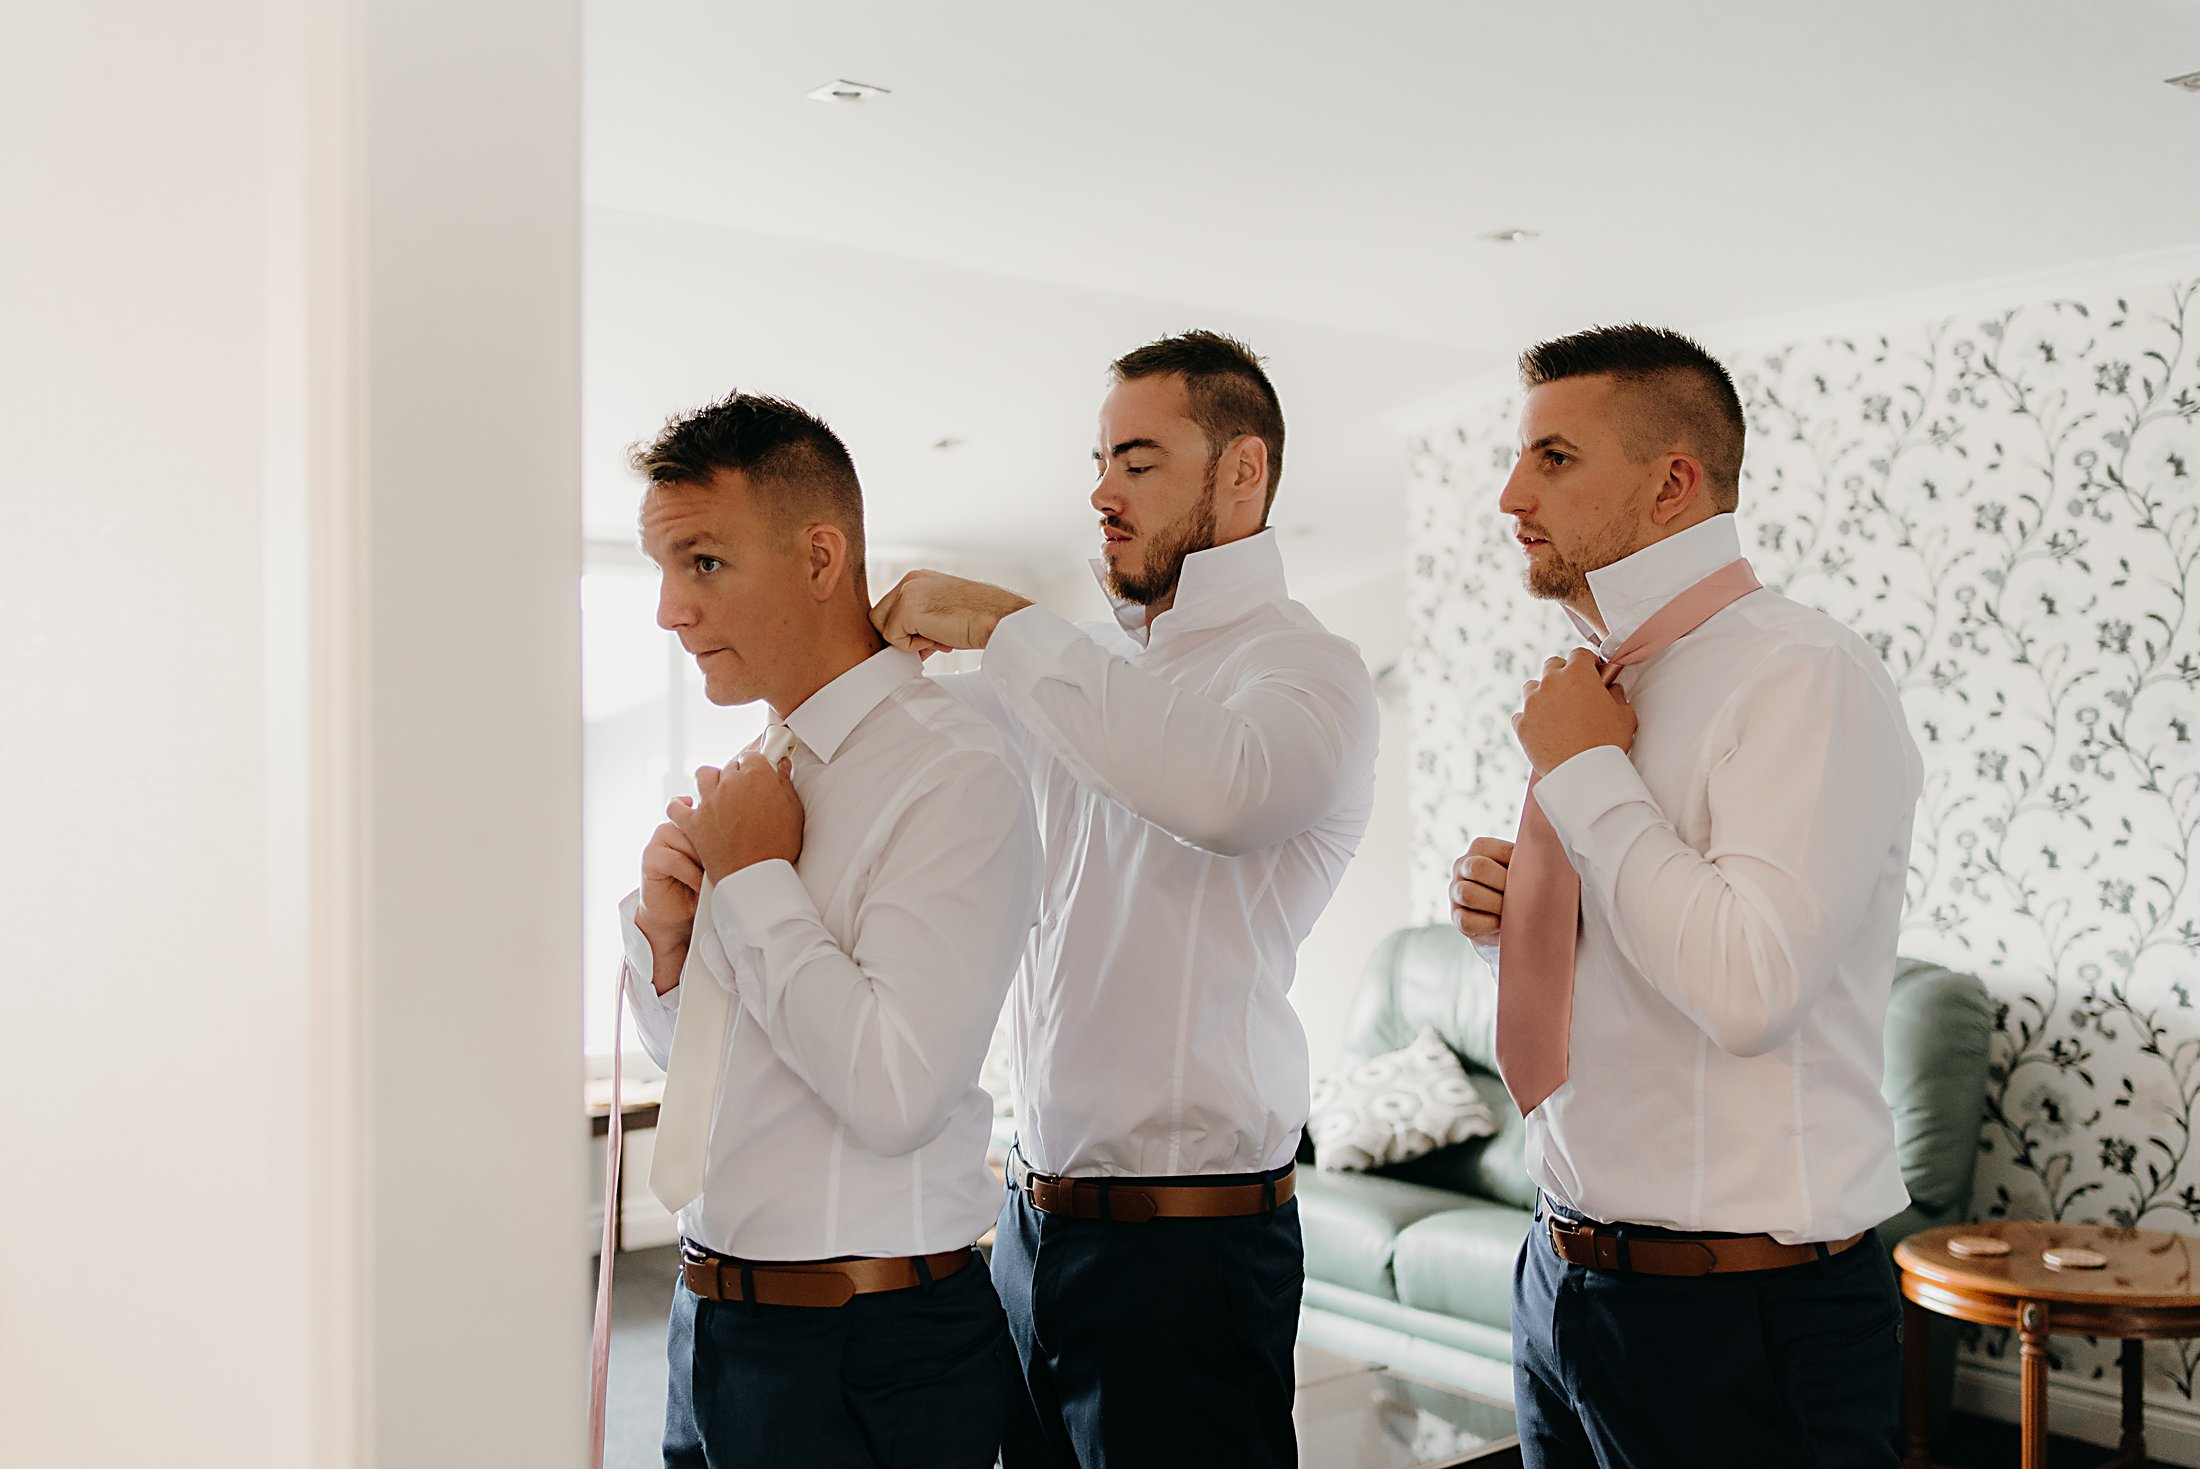 groomsmen tying his tie